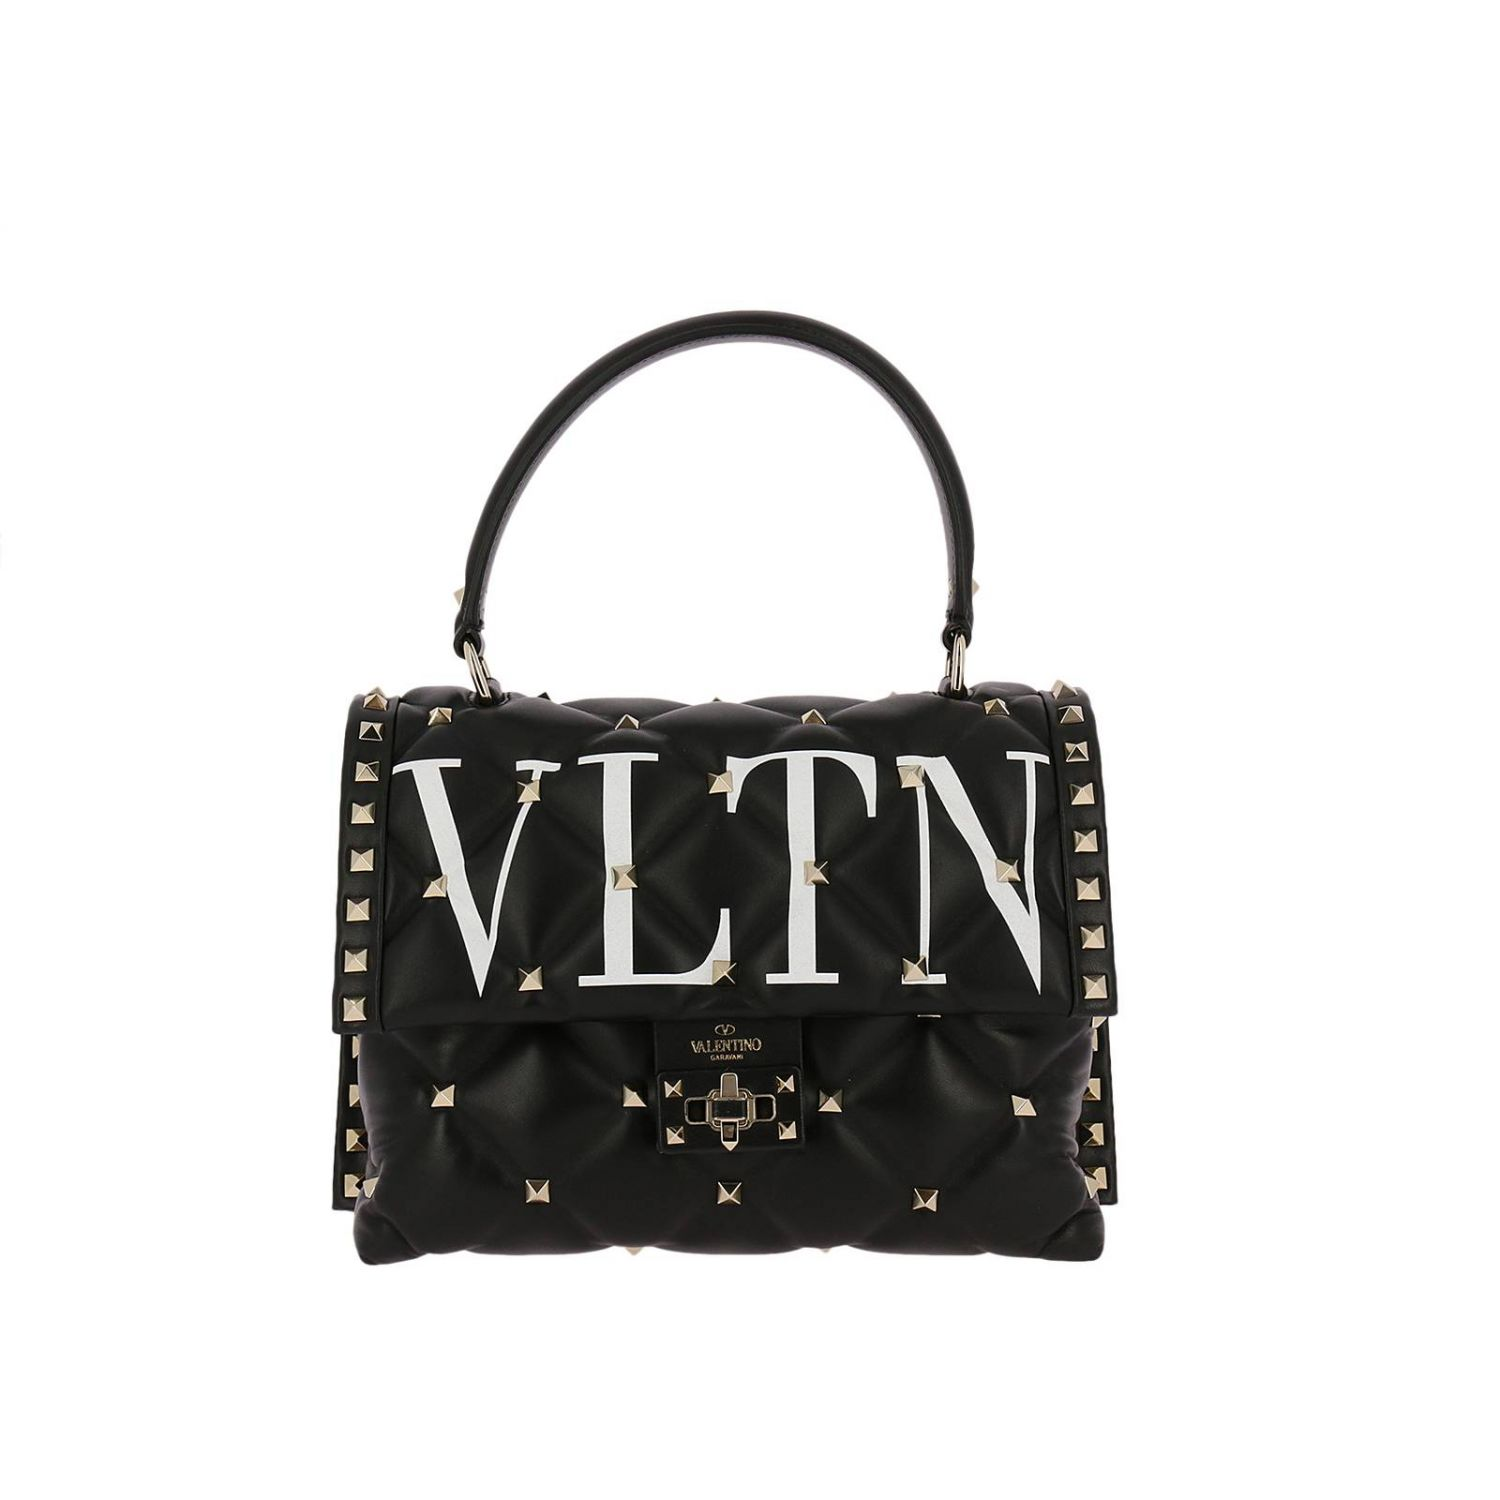 Handbag Valentino Candy Spike Bag In Genuine Quilted Leather With Micro Metal Studs And Valentino Print 8287173